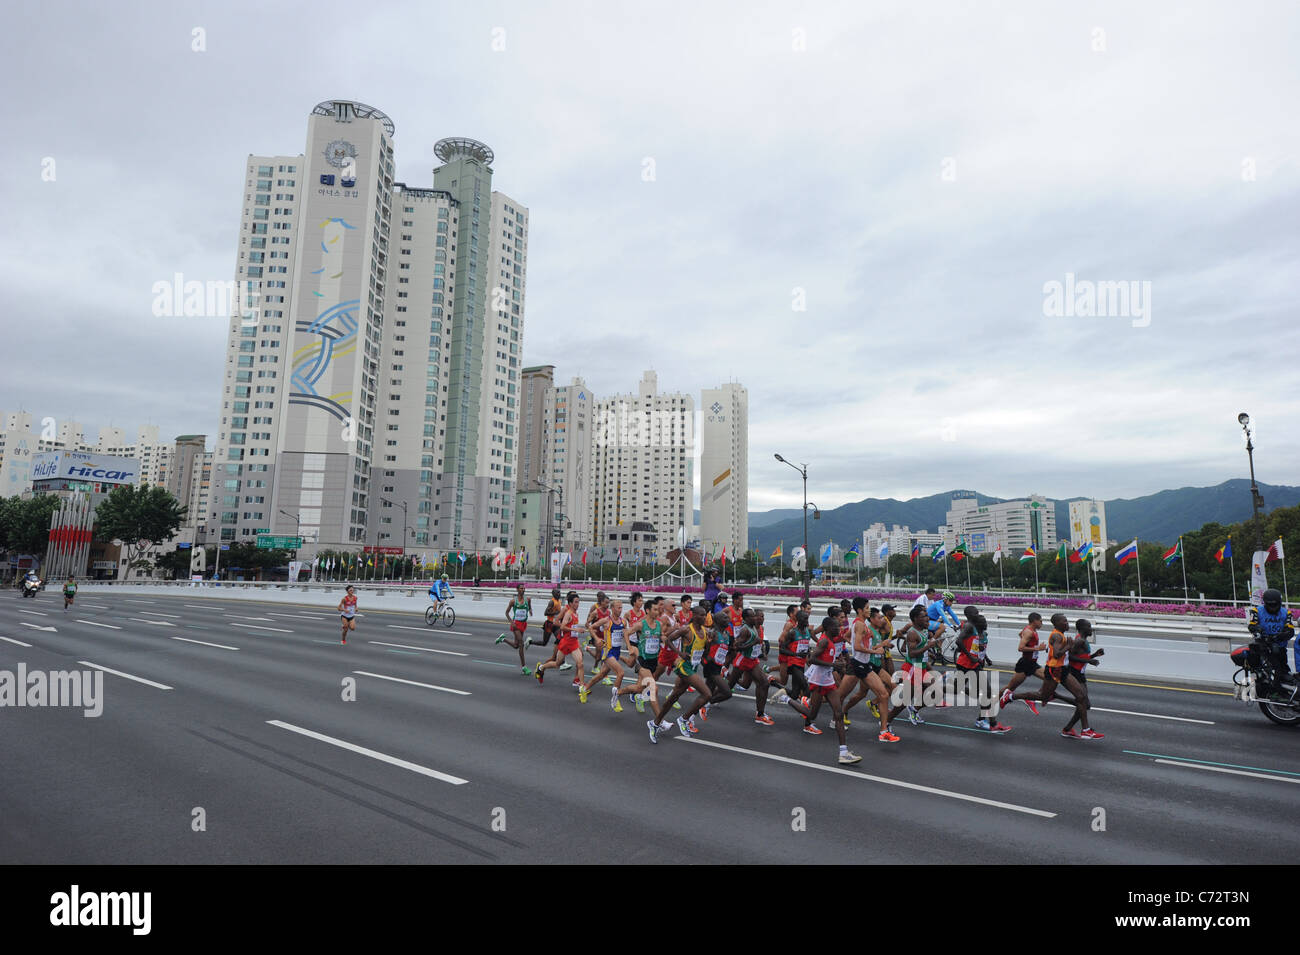 General view of Men's Marathon for The 13th IAAF World Championships in Athletics. - Stock Image